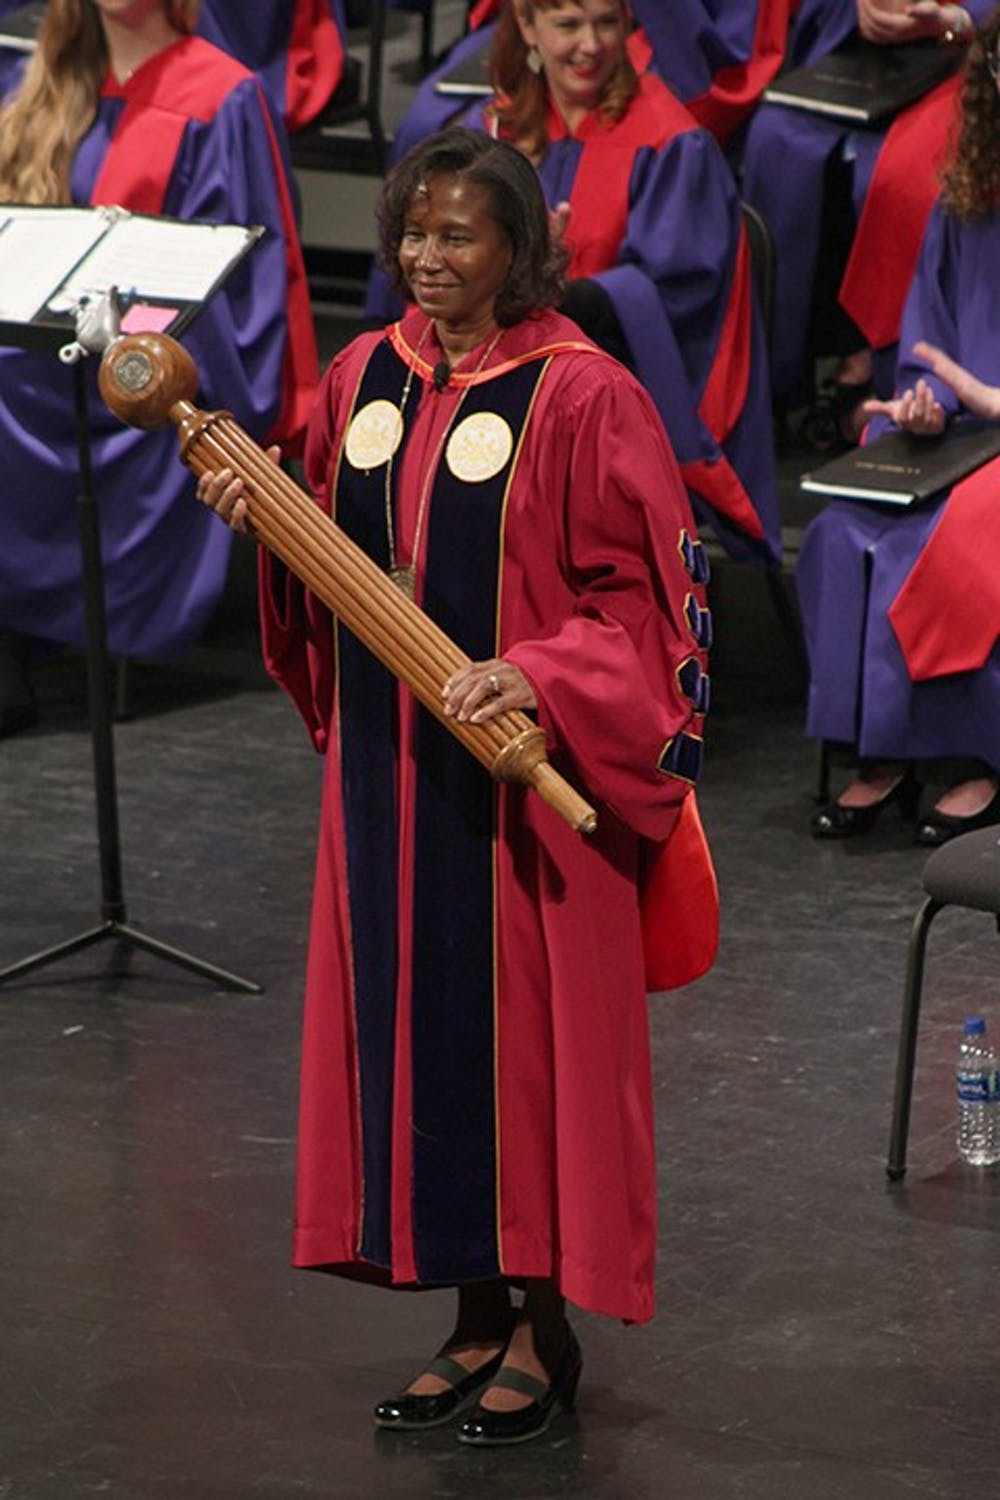 Laurie Carter inaugurated as 17th university president